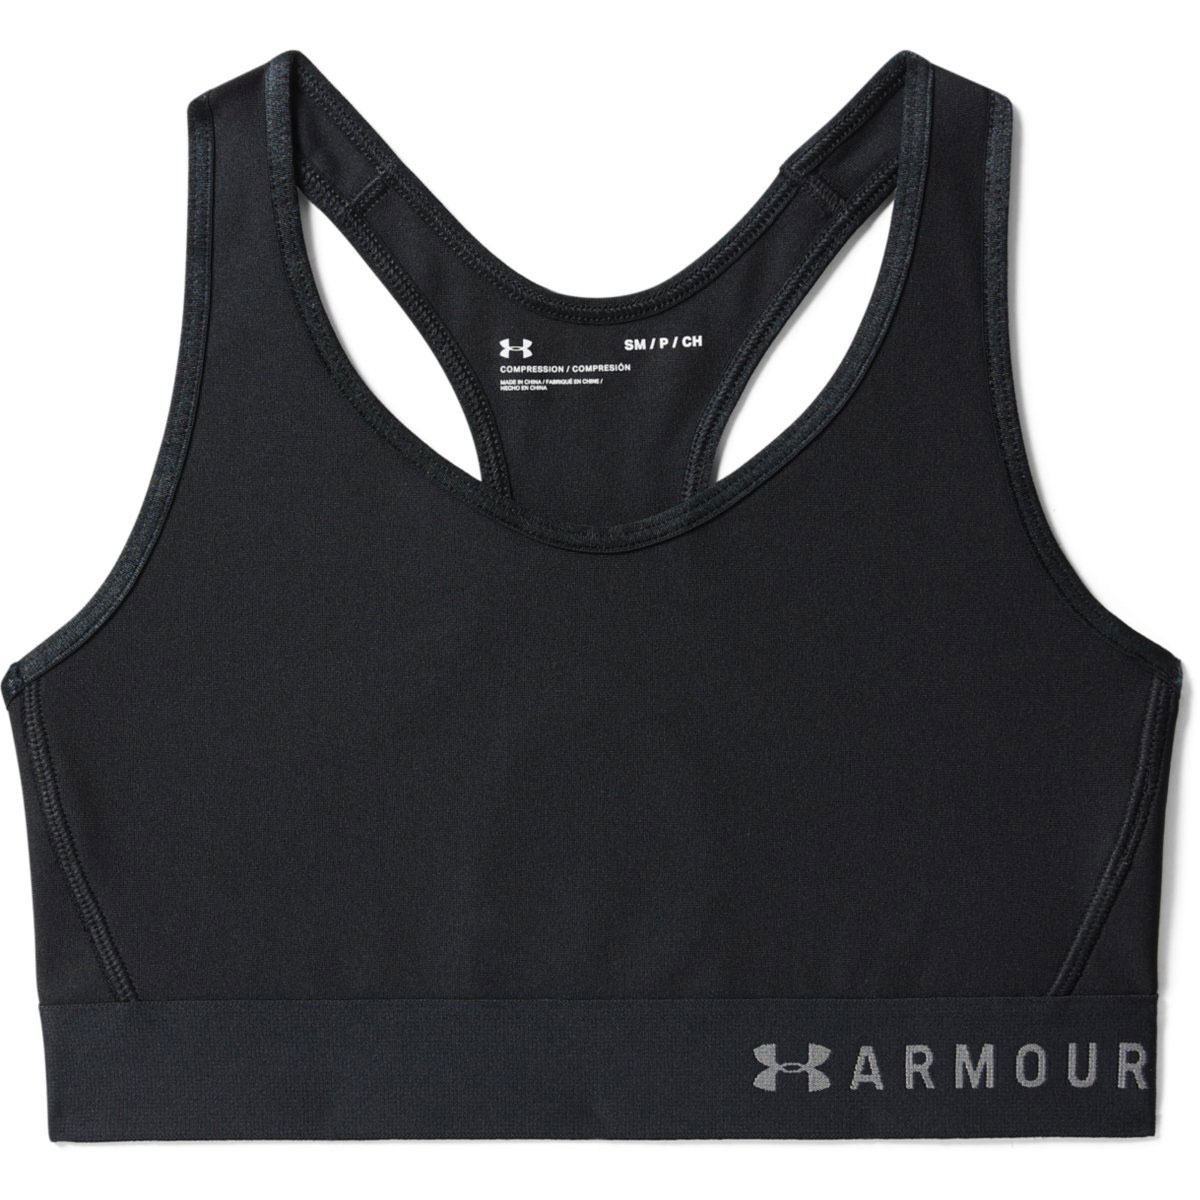 Under Armour Women's Armour Mid Sports Bra - Black, L